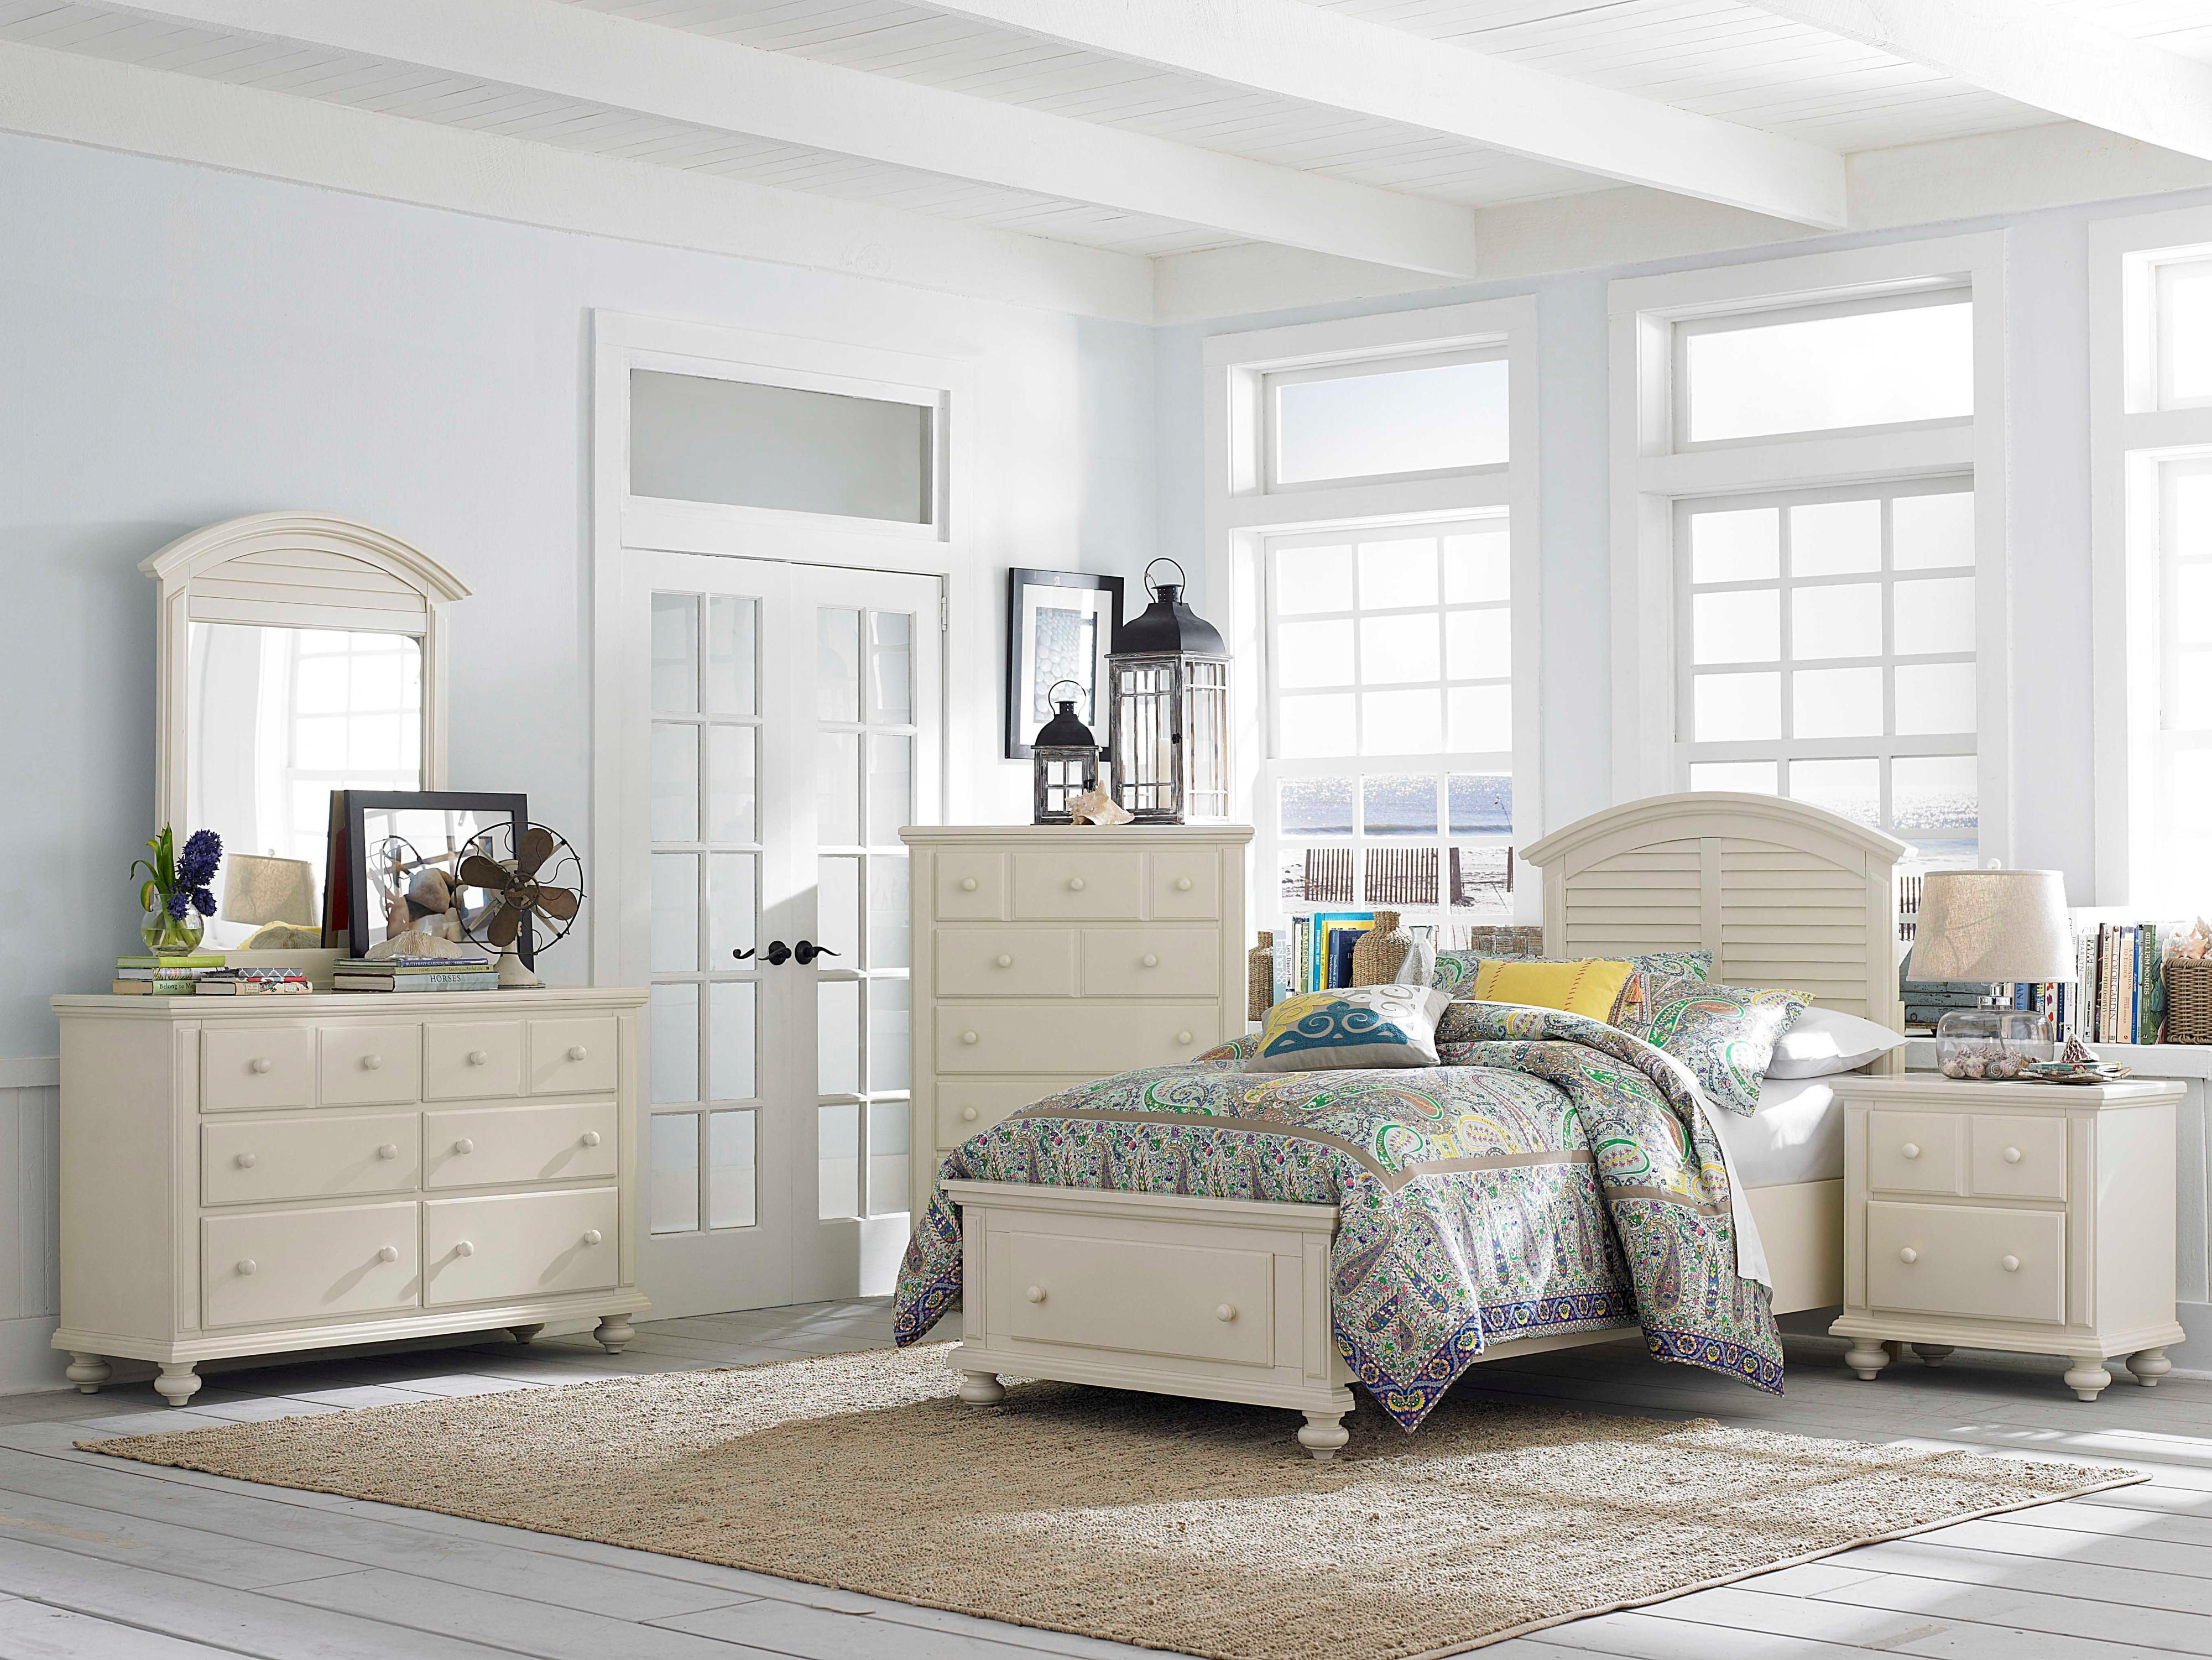 Broyhill furniture seabrooke 4471 292 two drawer for Queen bed against wall